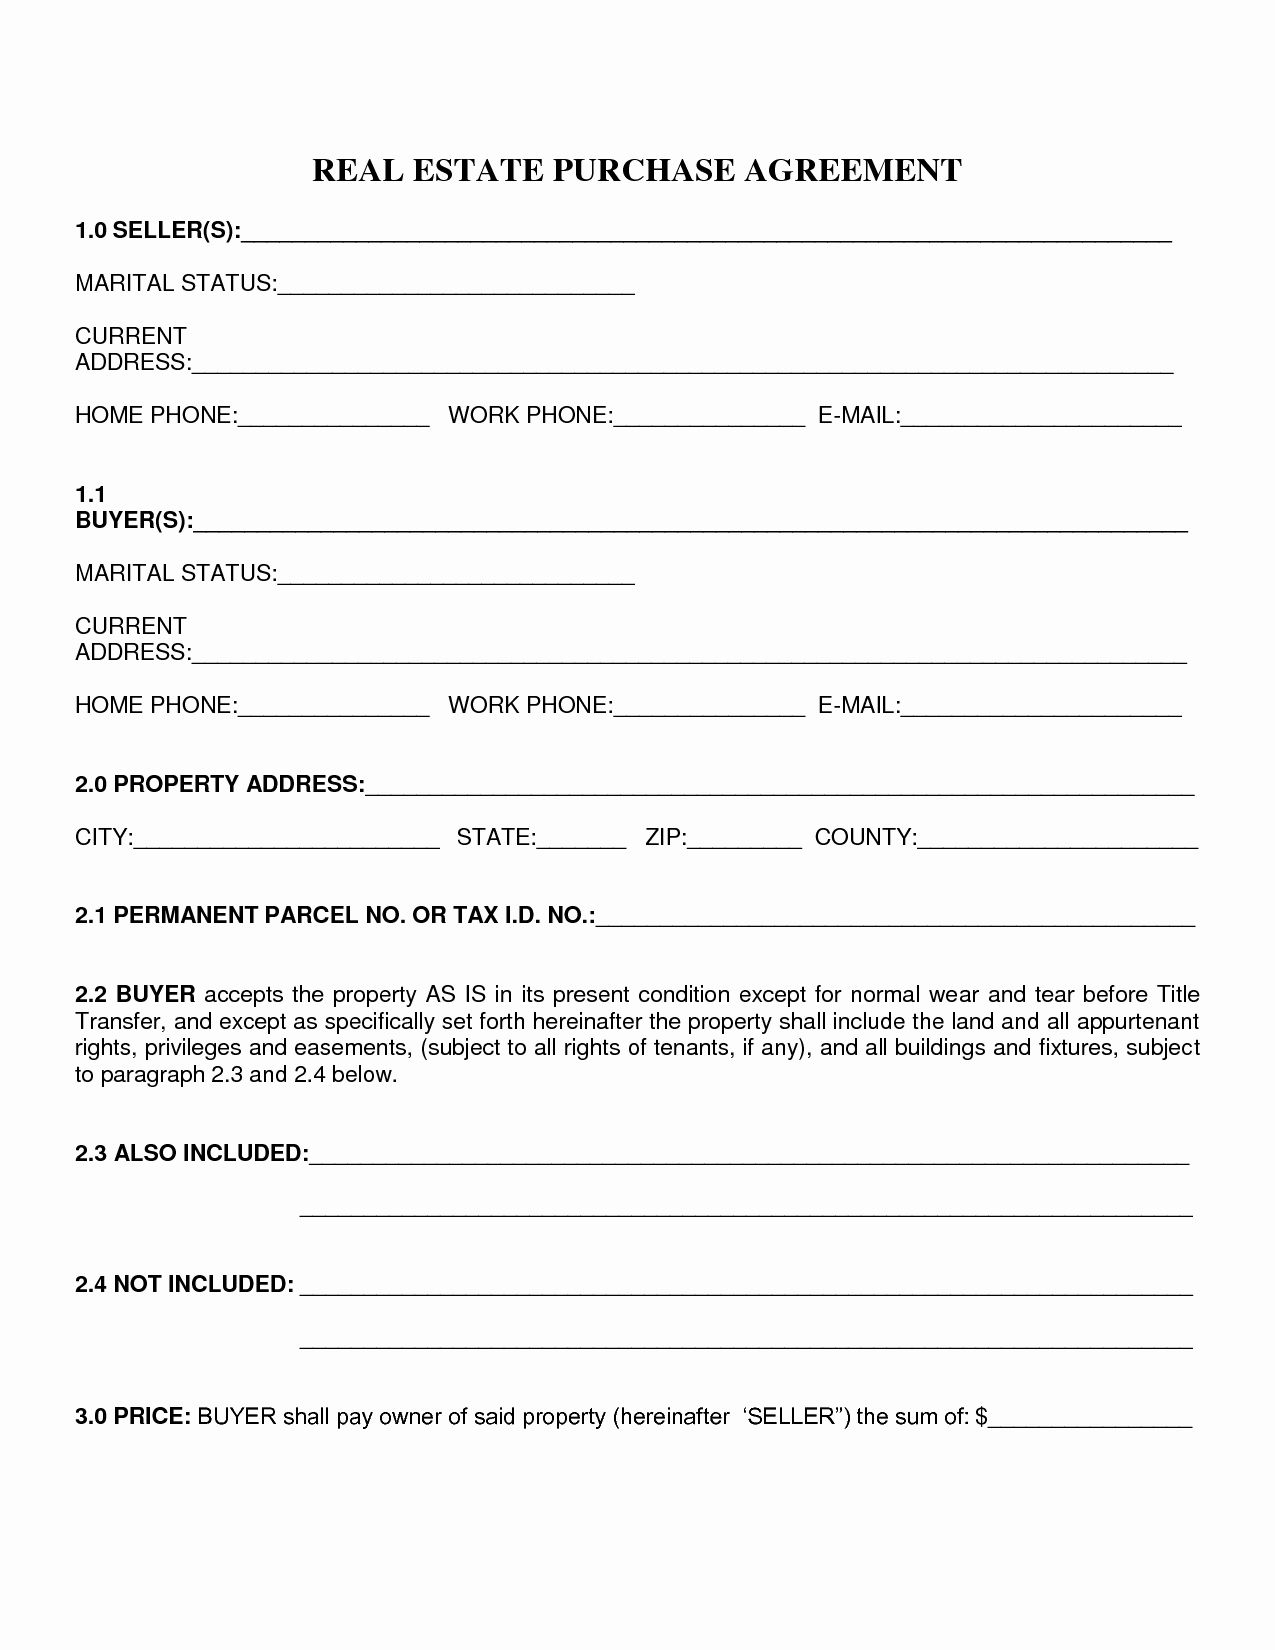 Simple Home Purchase Agreement Fresh 4 For Sale By Owner Purchase Agreement Form Real Estate Contract Purchase Agreement Contract Template